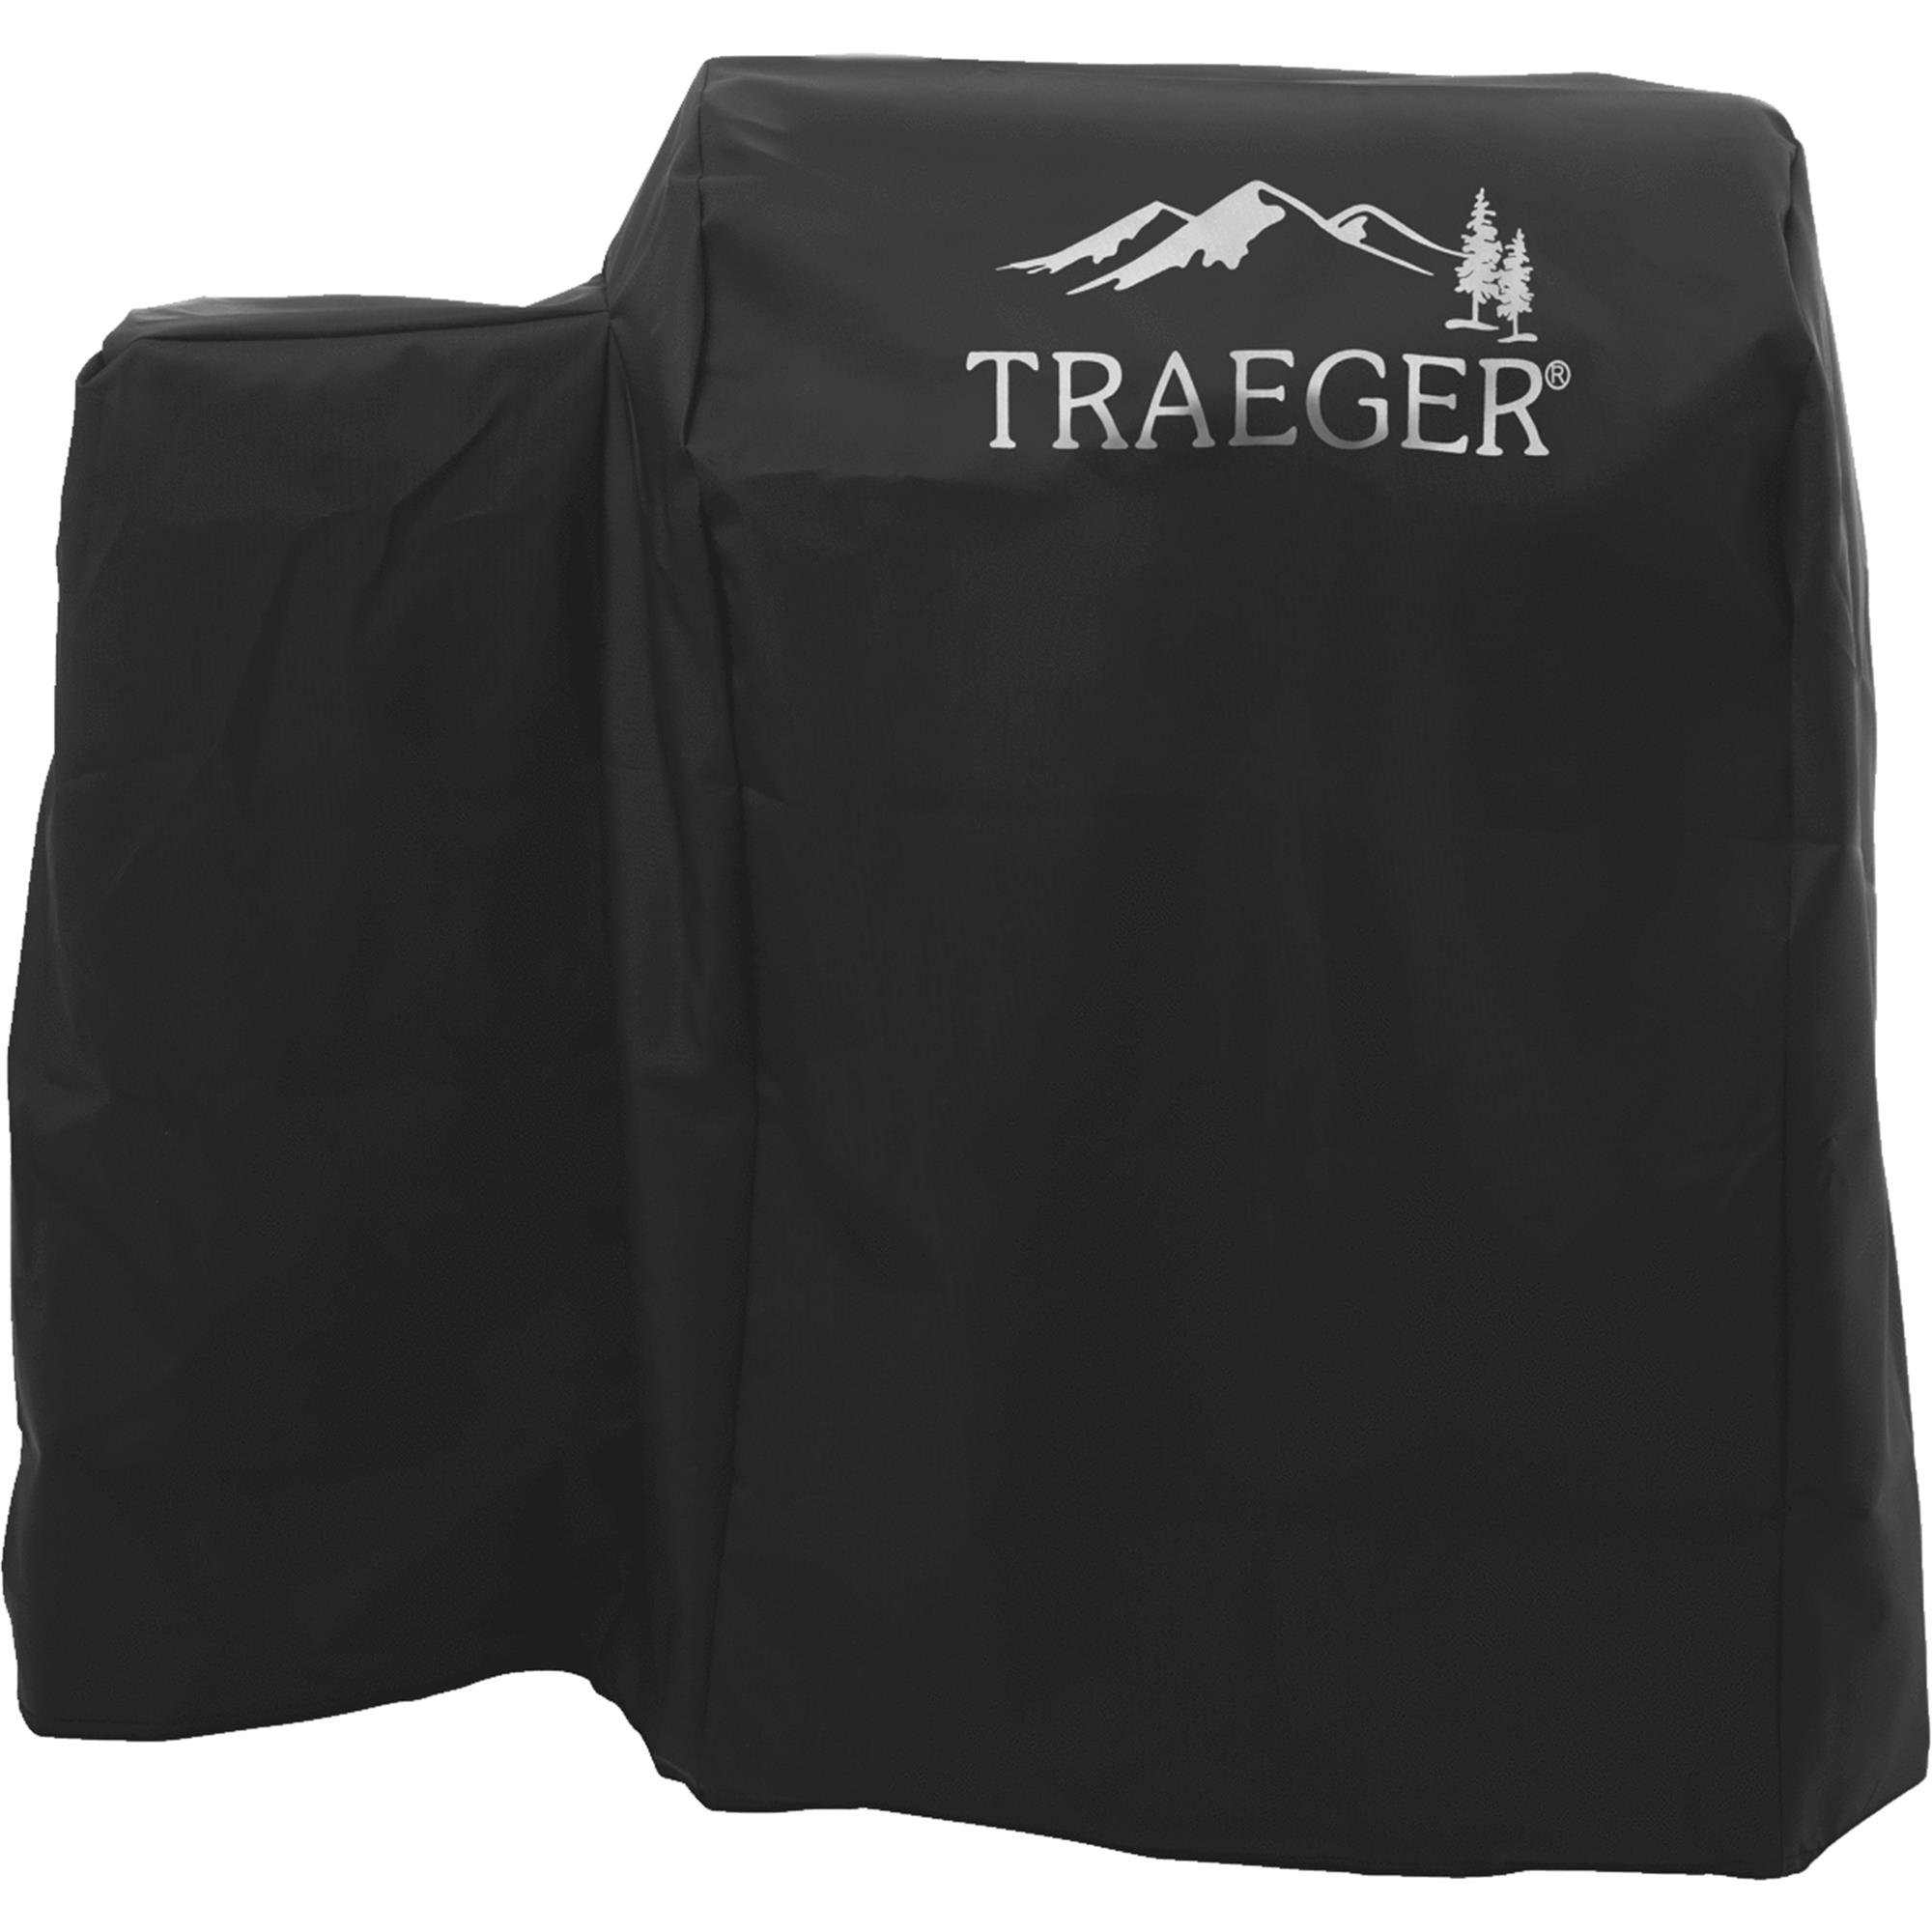 Traeger 20 Series 39 In. Grill Cover